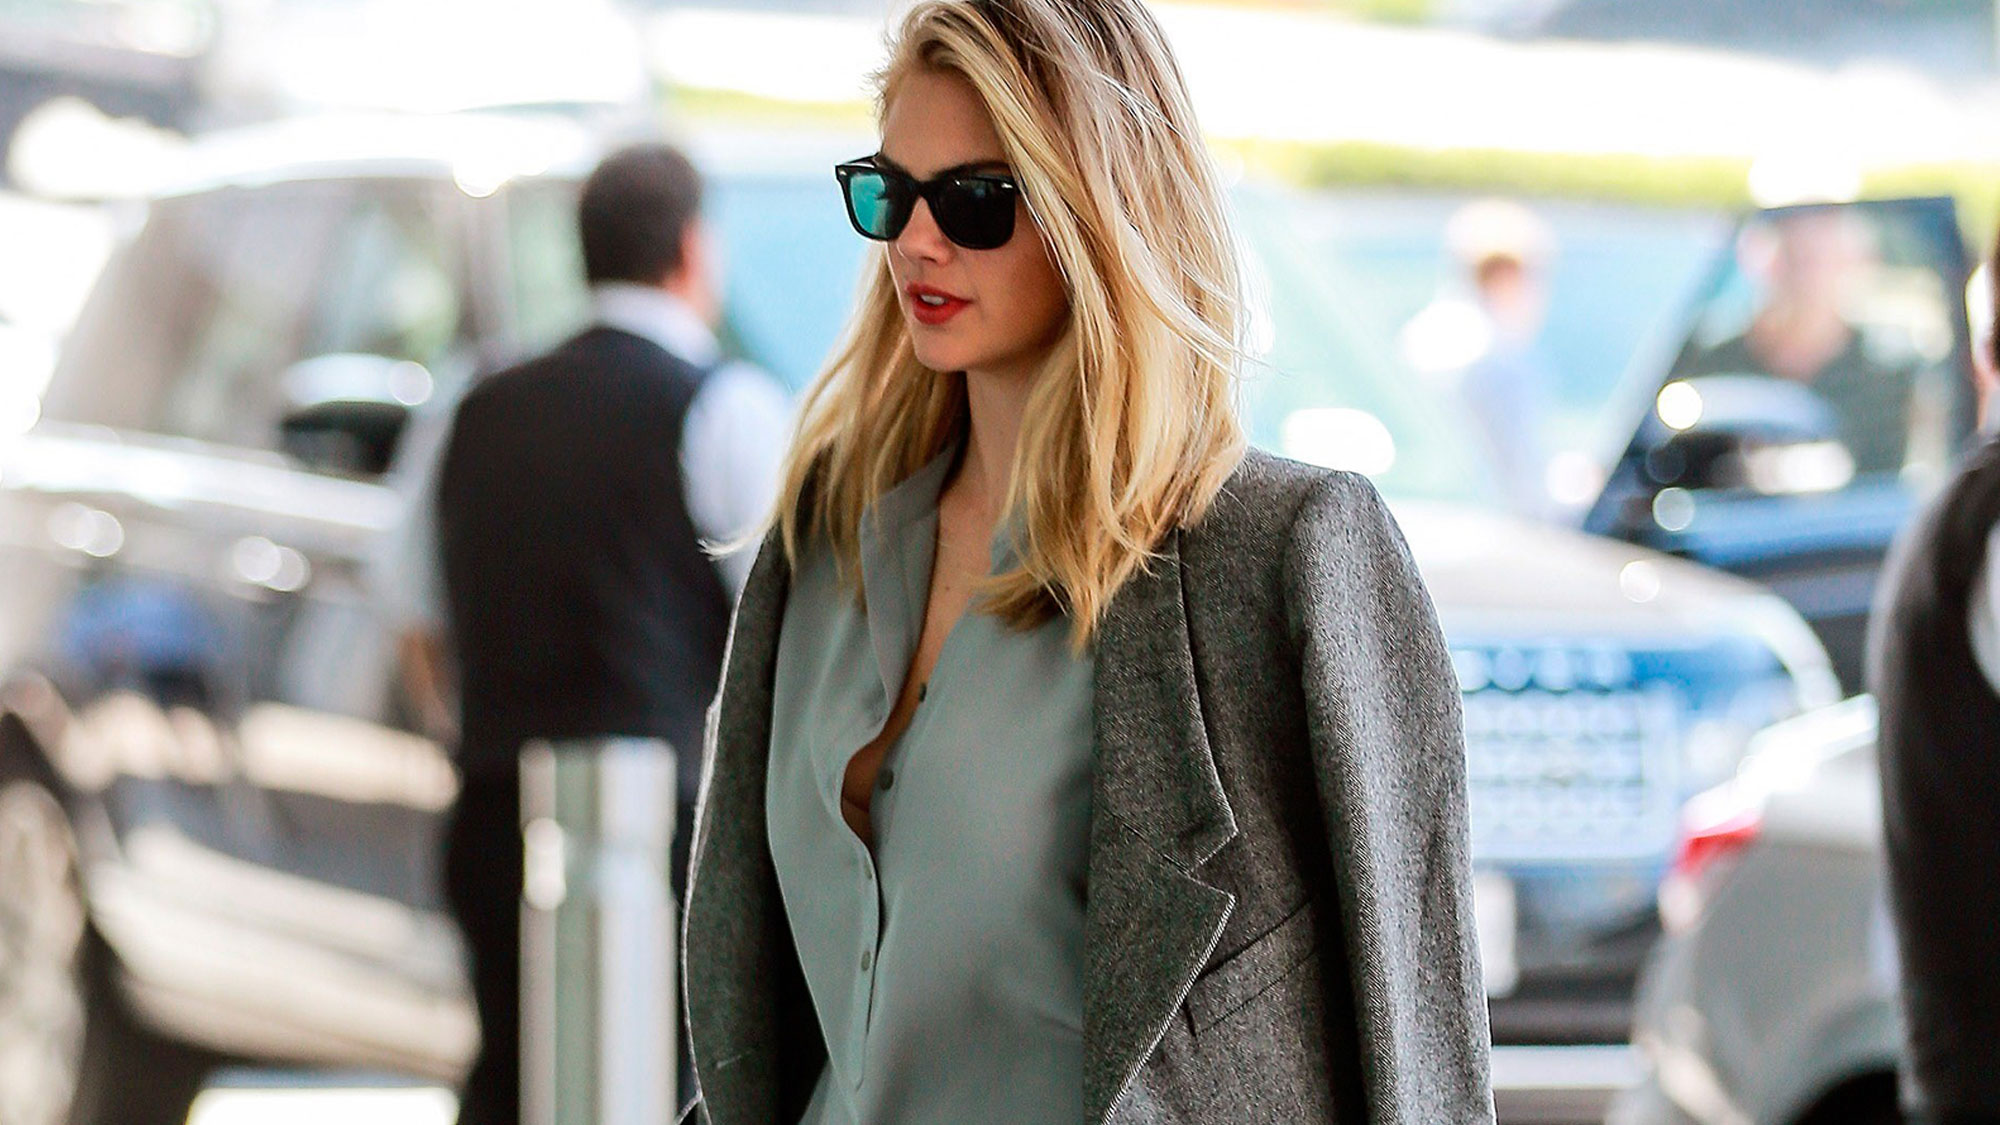 Let these stars inspire your office wardrobe